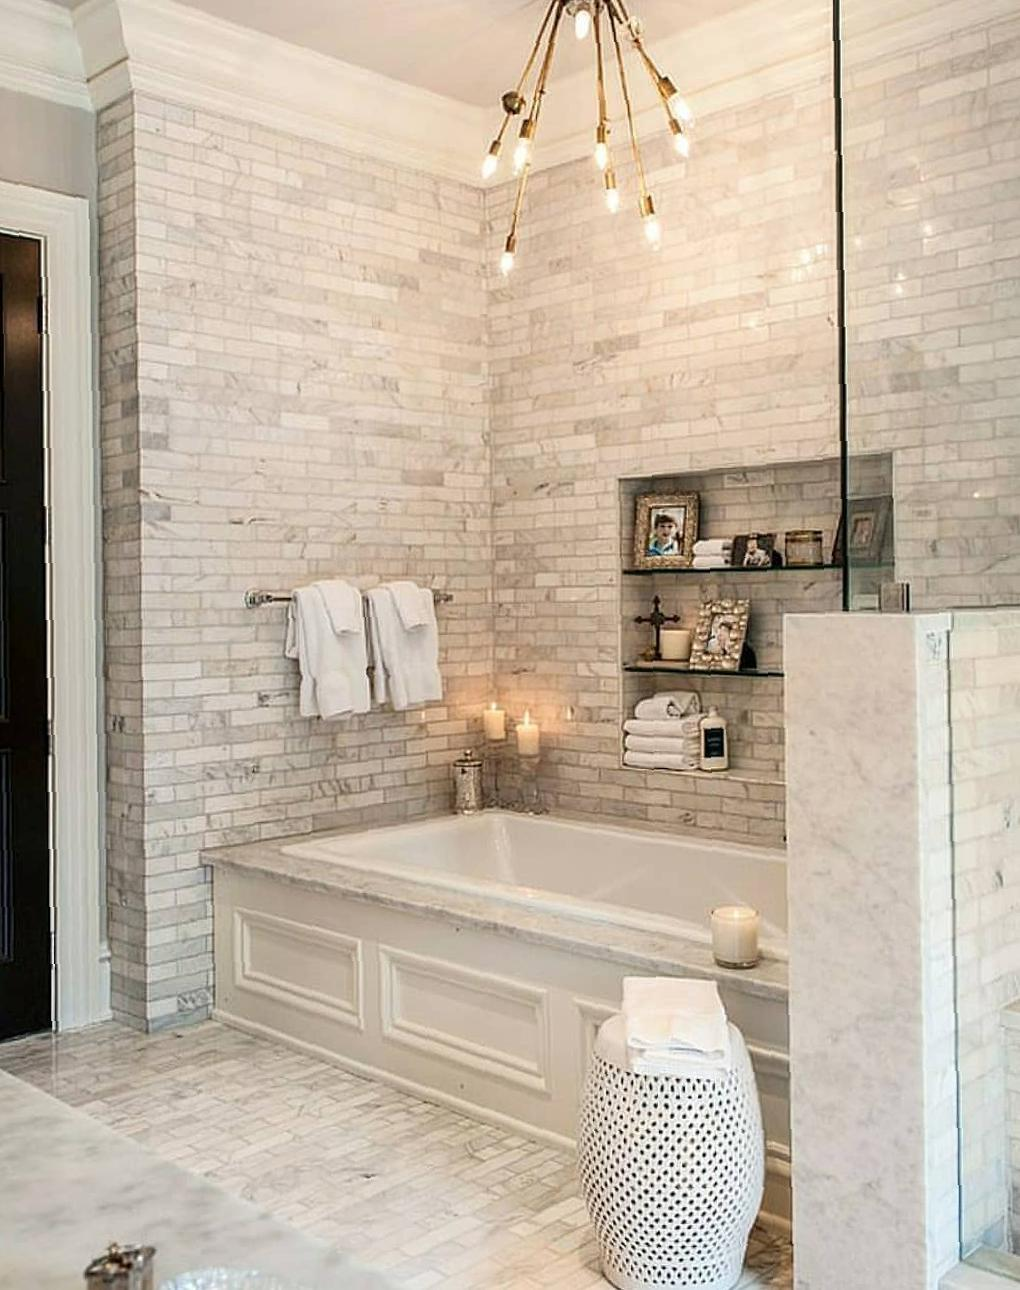 Beautiful Bathroom Decorations that Let Your Home Become More Warm and Comfortable! - Page 10 of 19 - Guide19 Blog